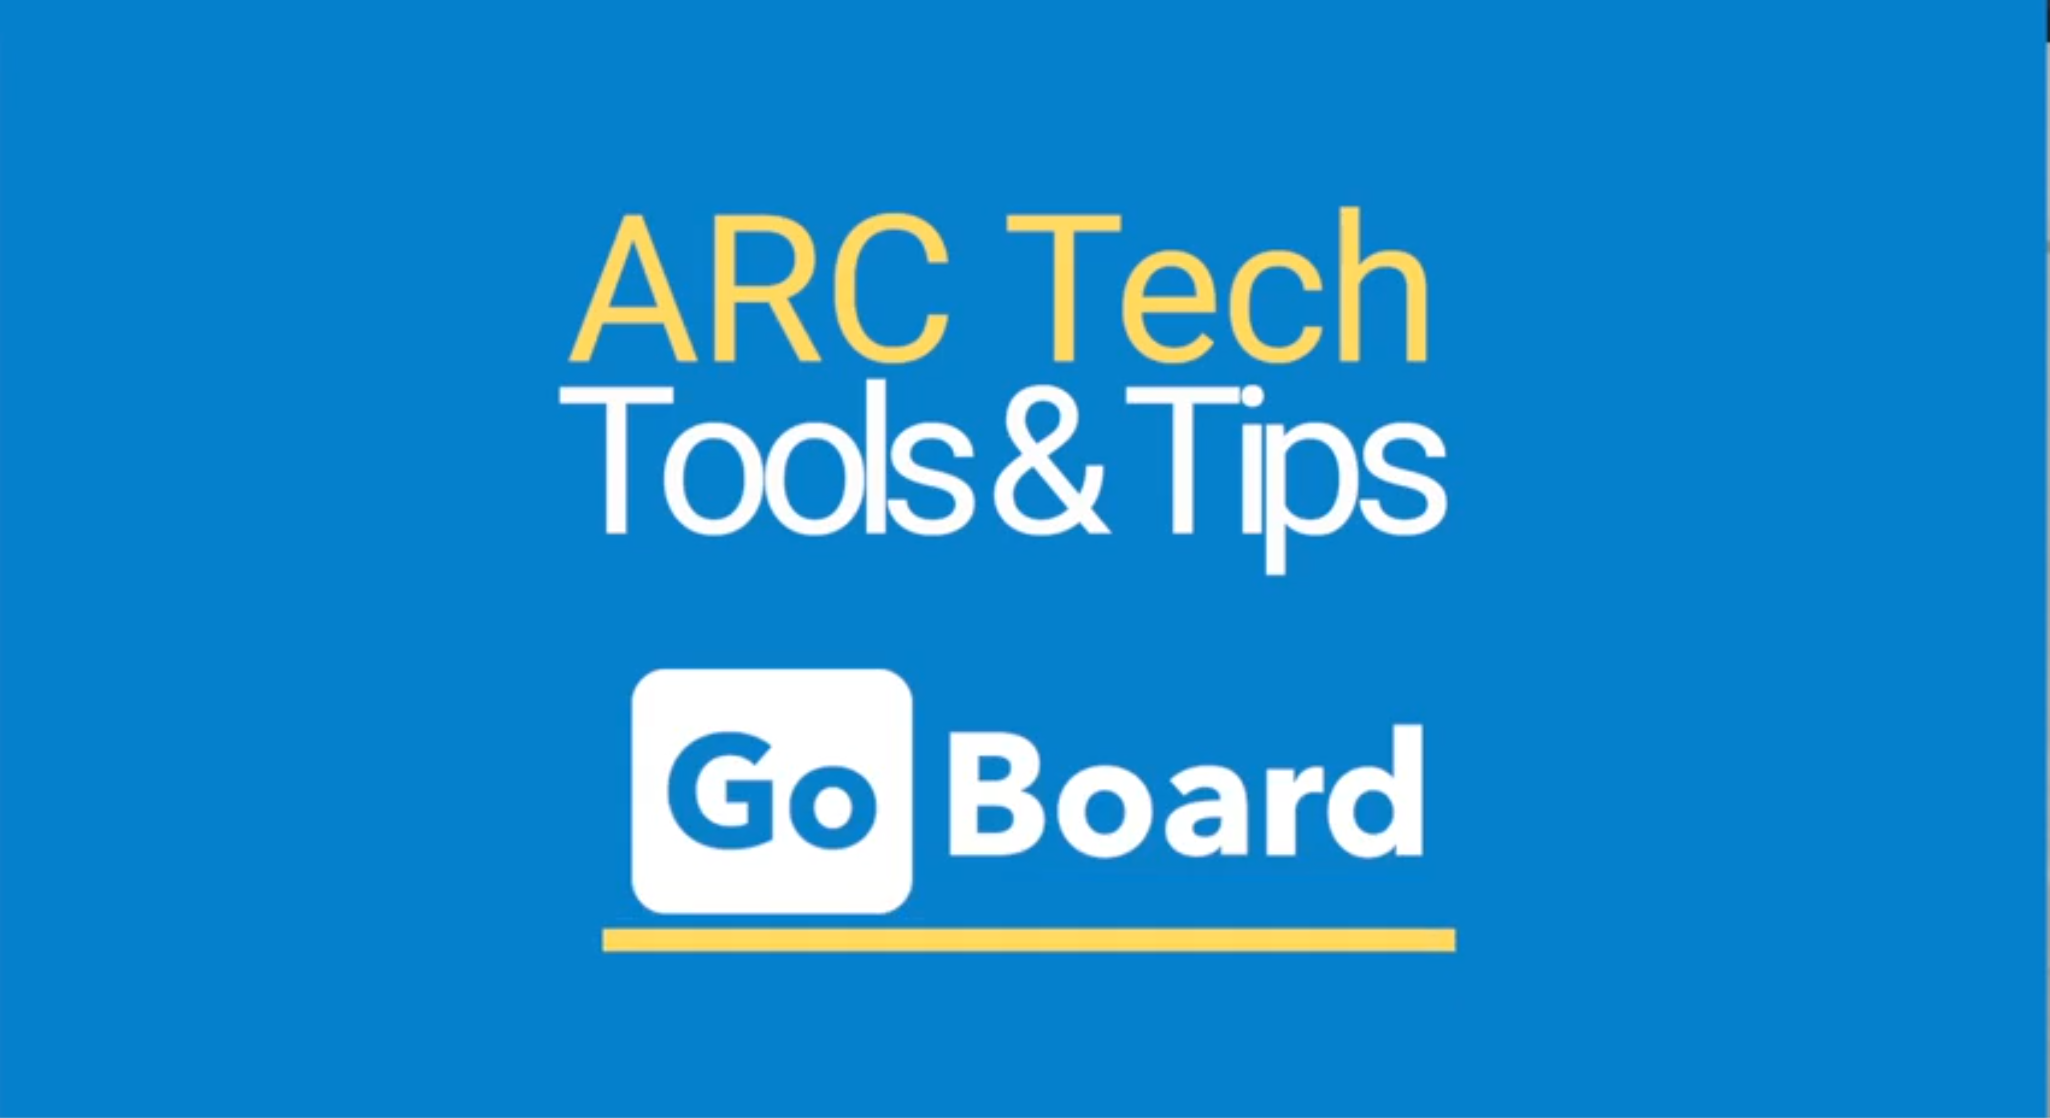 ARC Tools & Tips GoBoard